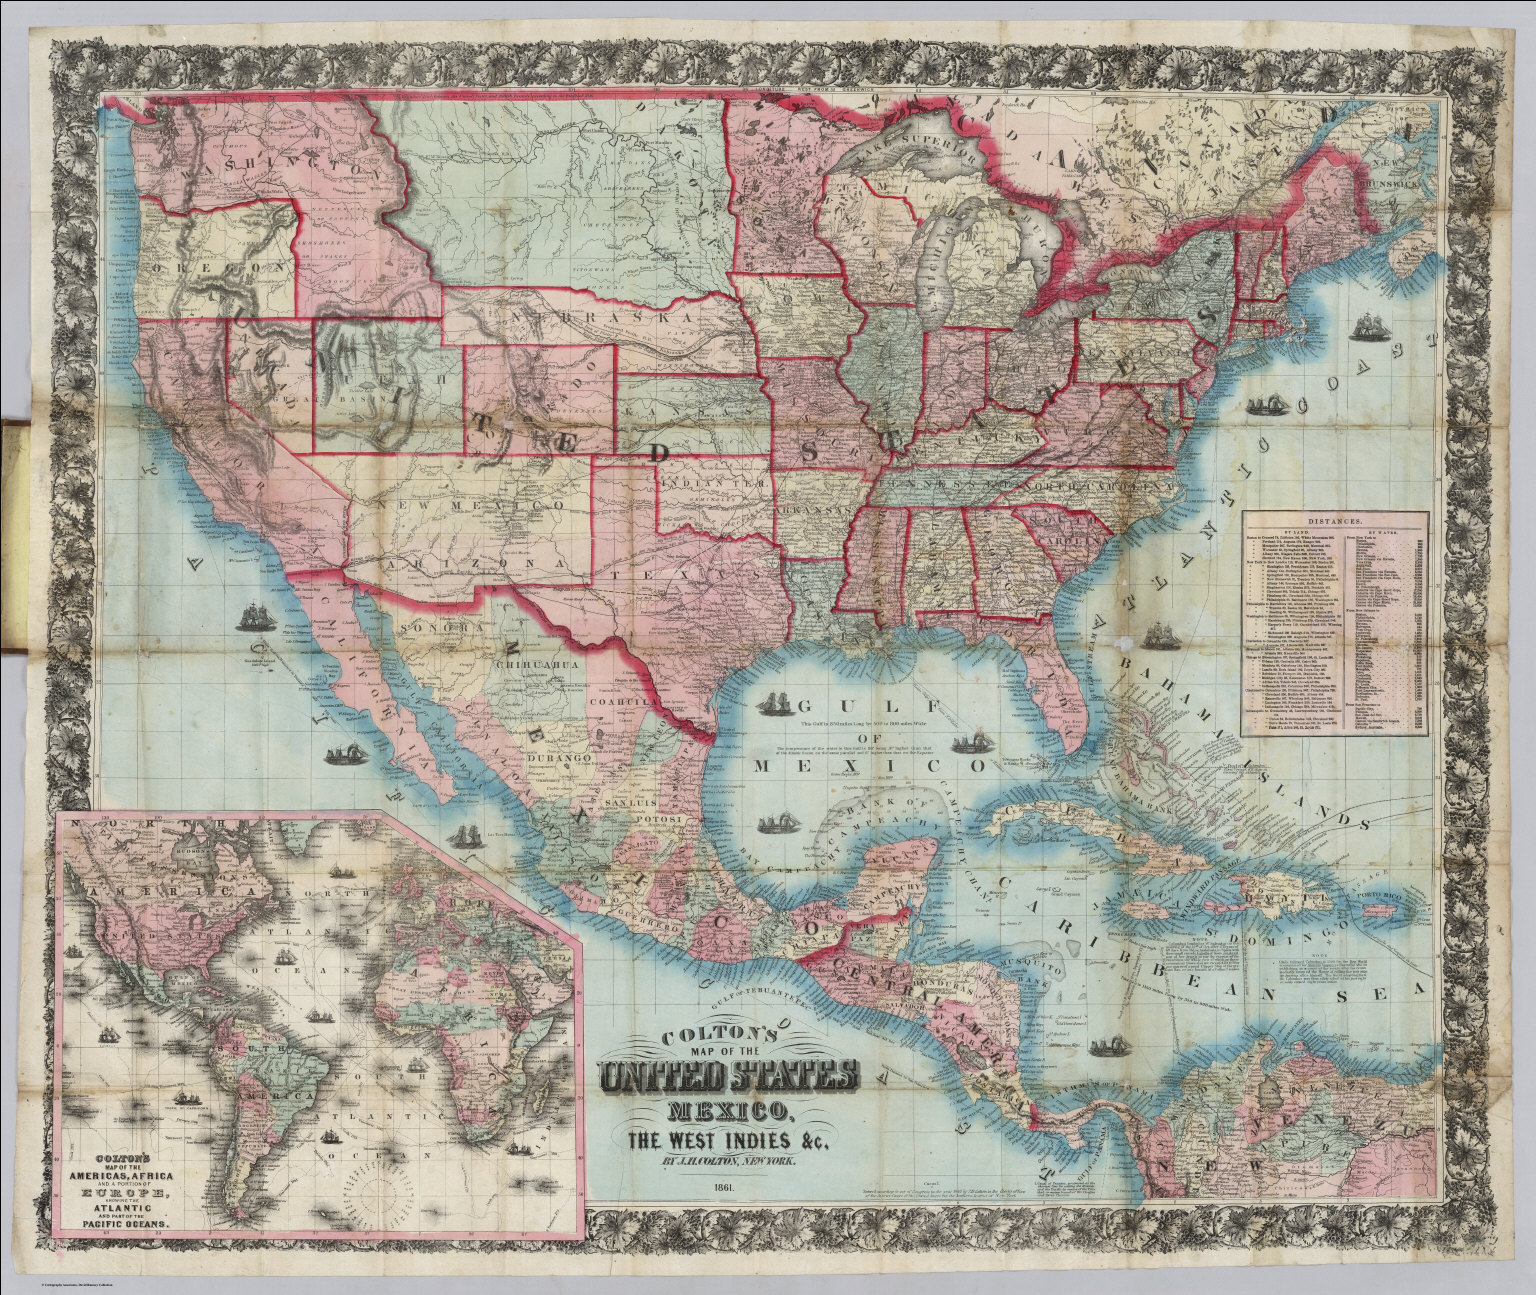 United States Mexico The West Indies David Rumsey Historical - Map of america 1860